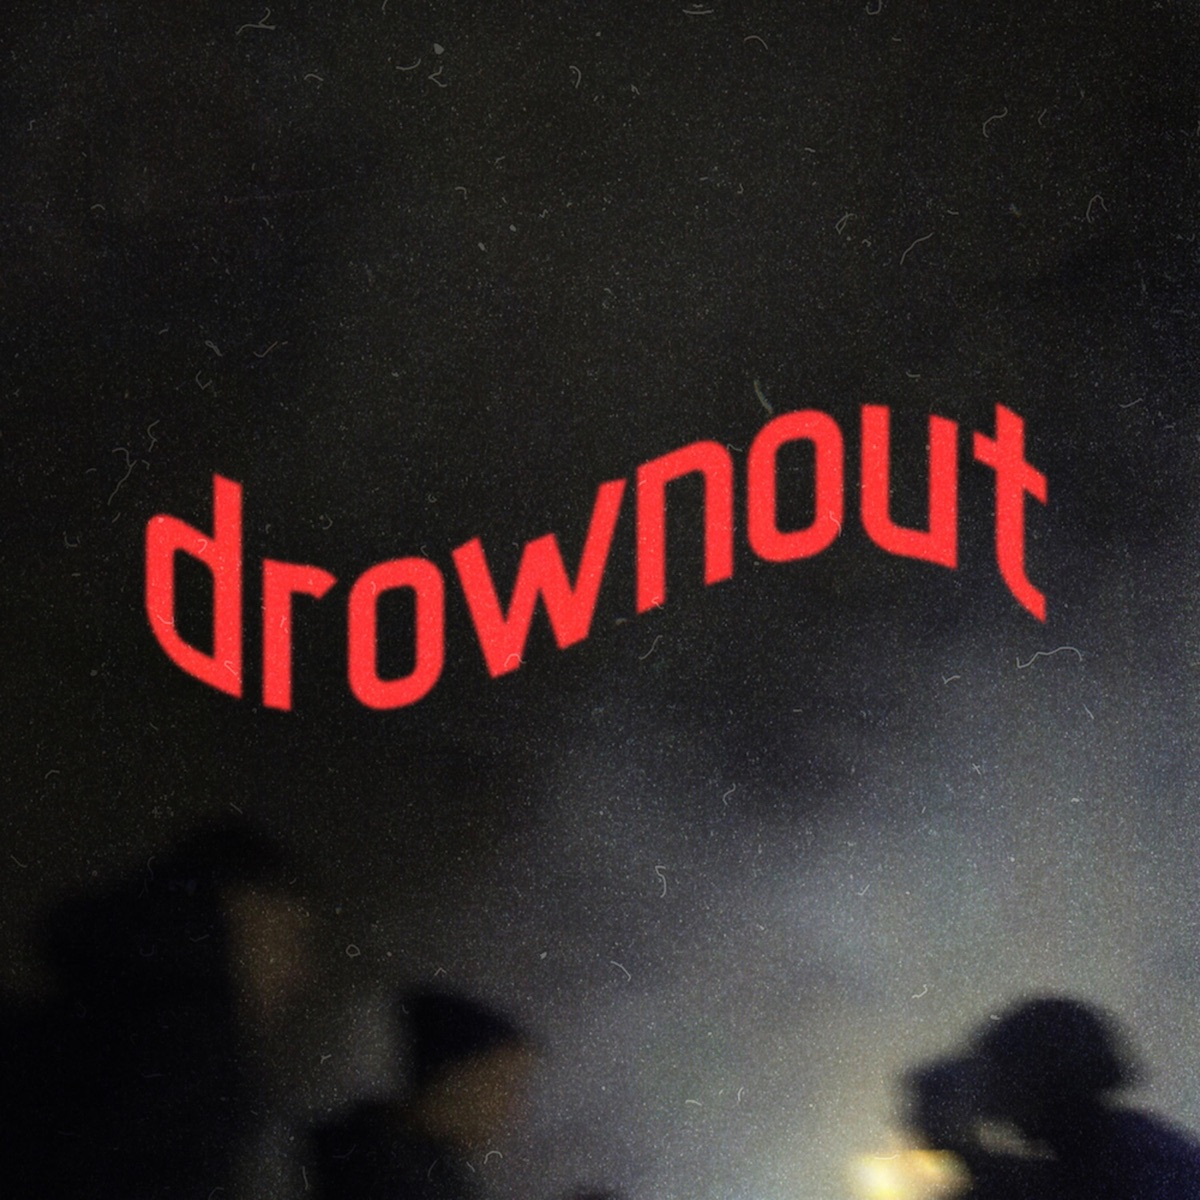 Drownout - Single Sainttt CD cover